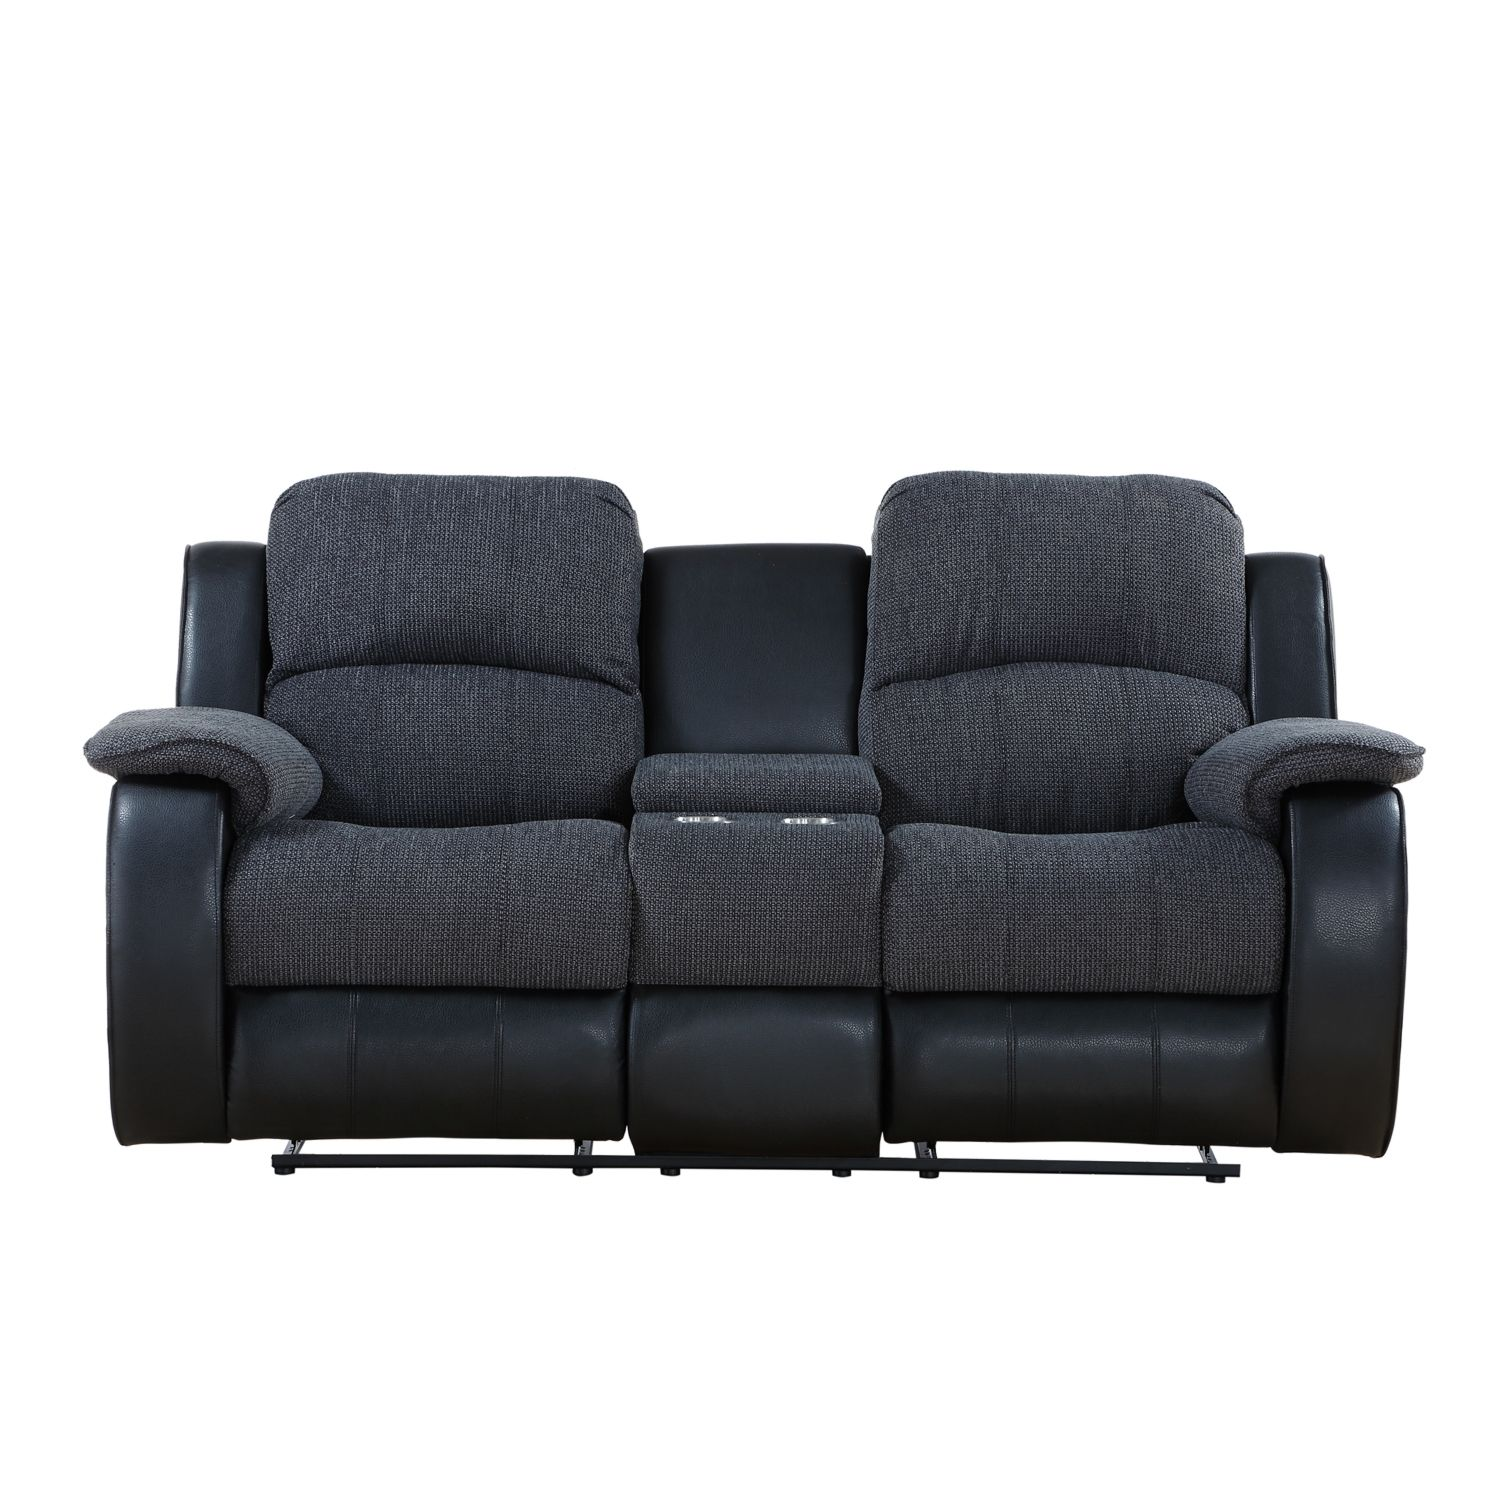 Outstanding Chicago Two Seater Console Recliner Sofa Living Room Pdpeps Interior Chair Design Pdpepsorg